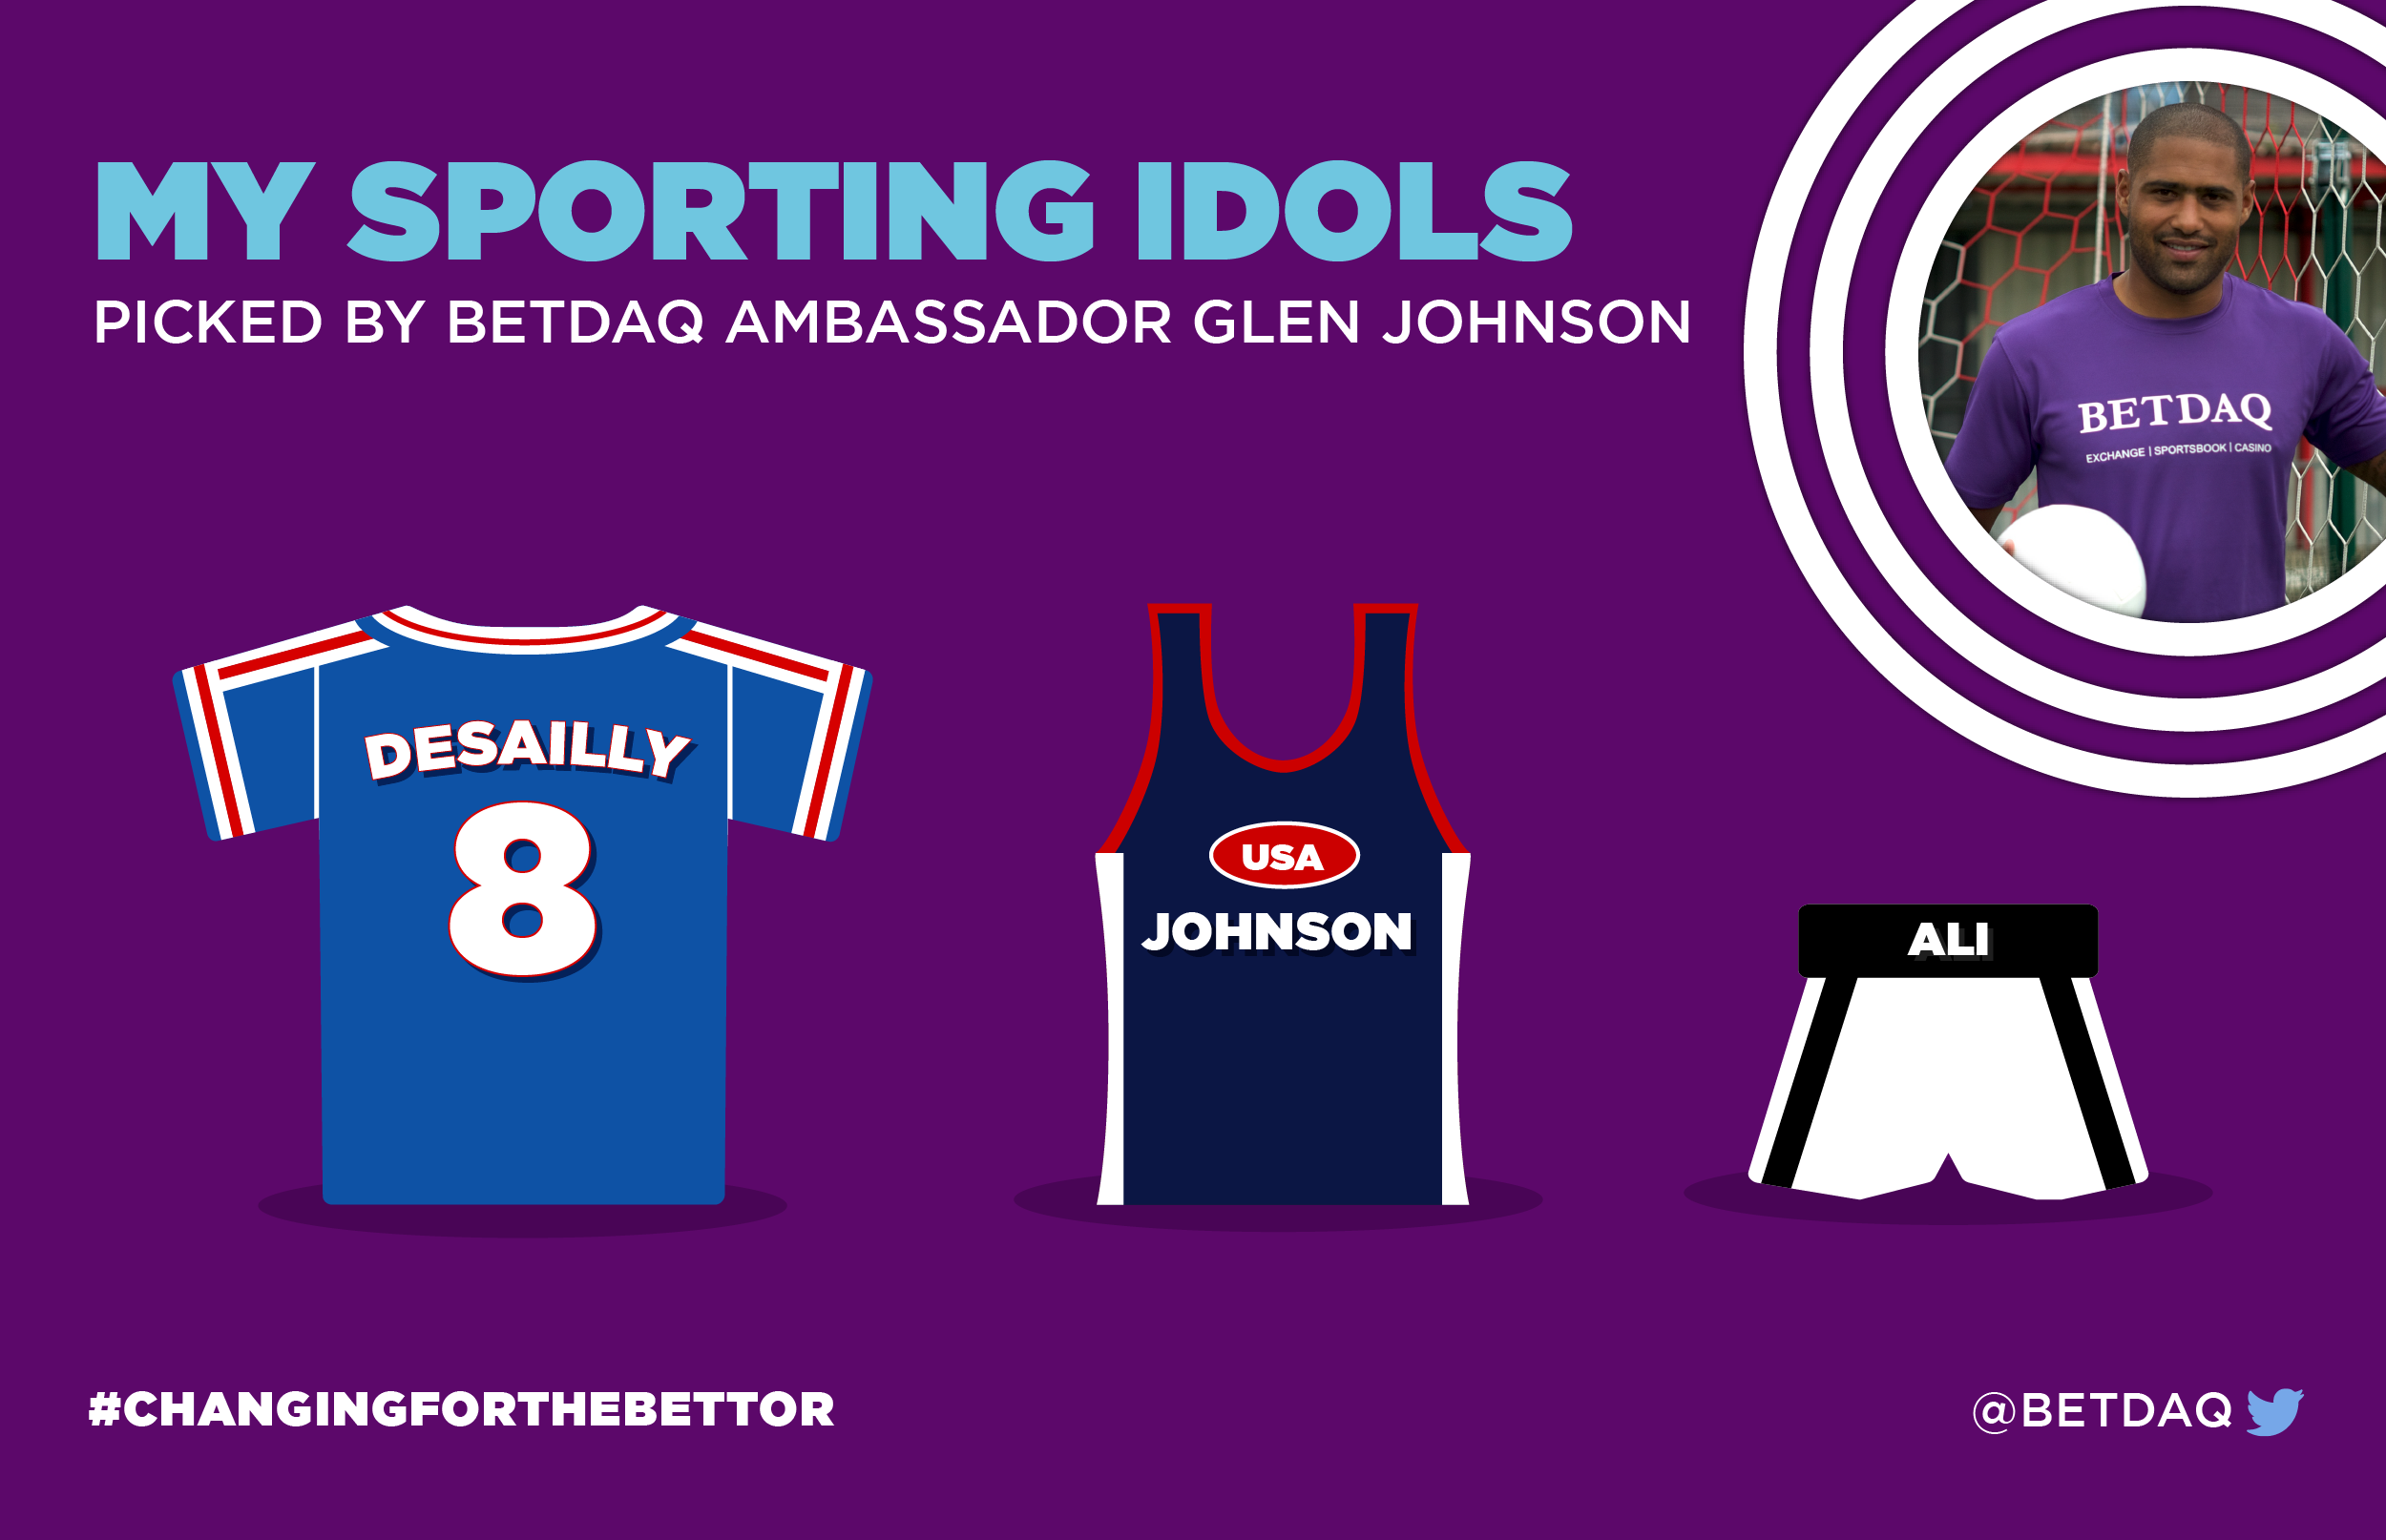 glen johnson idols